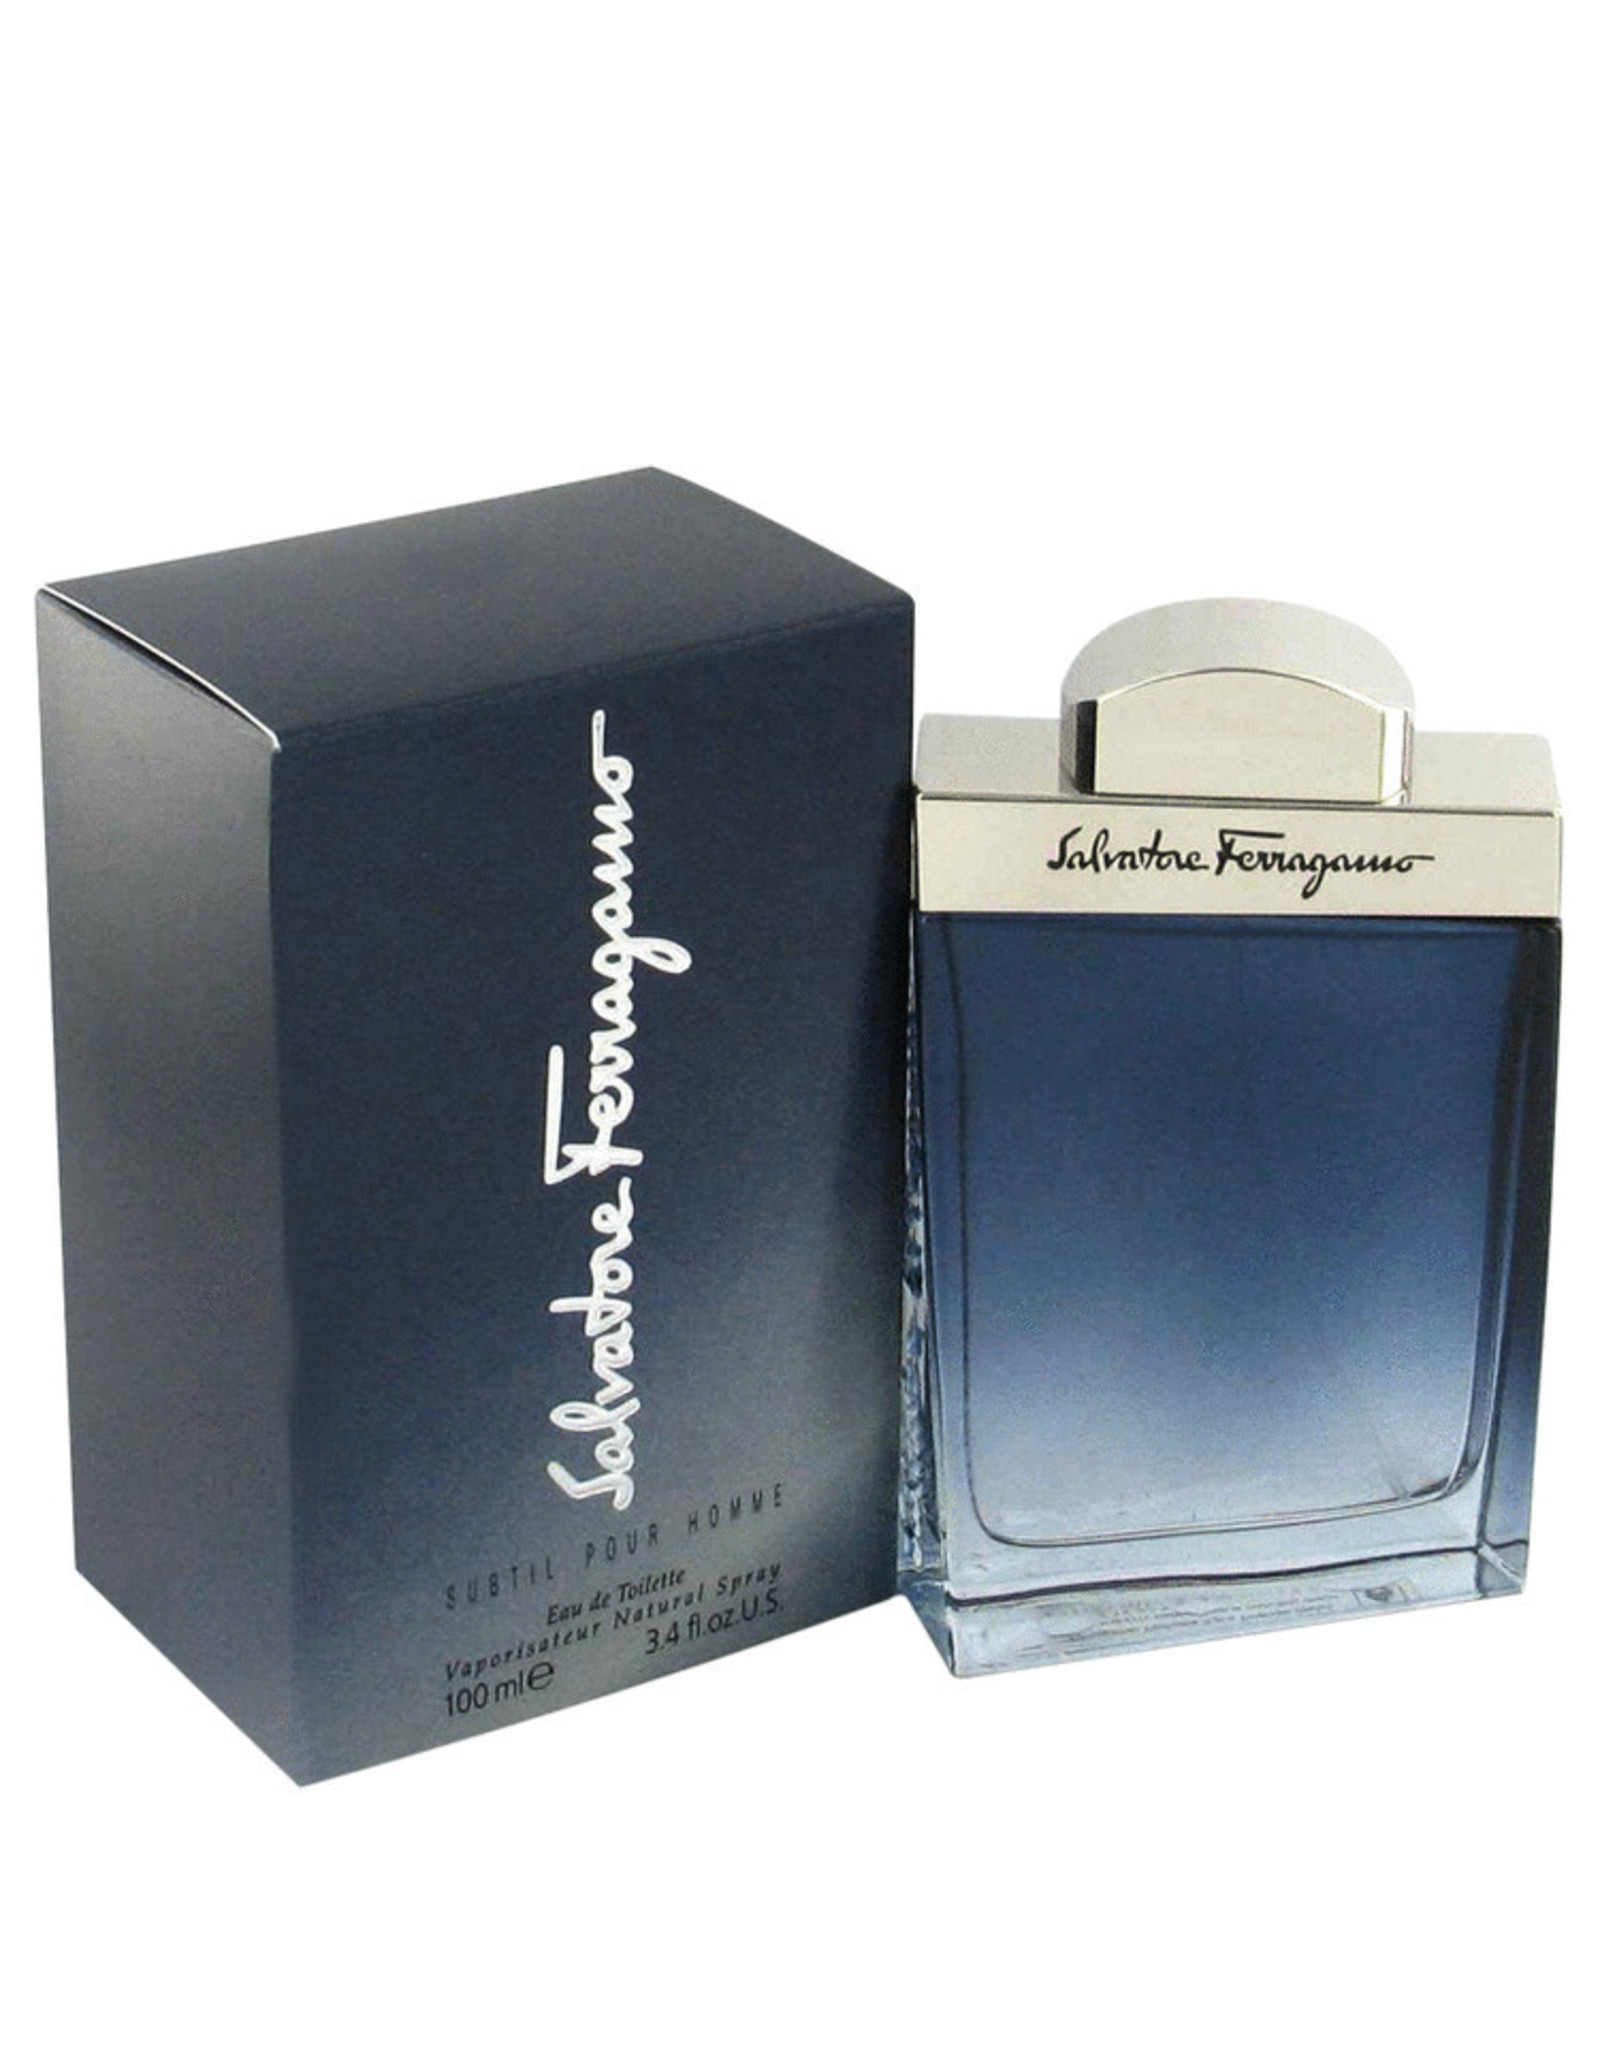 SALVATORE FERRAGAMO SALVATORE FERRAGAMO SUBTIL POUR HOMME